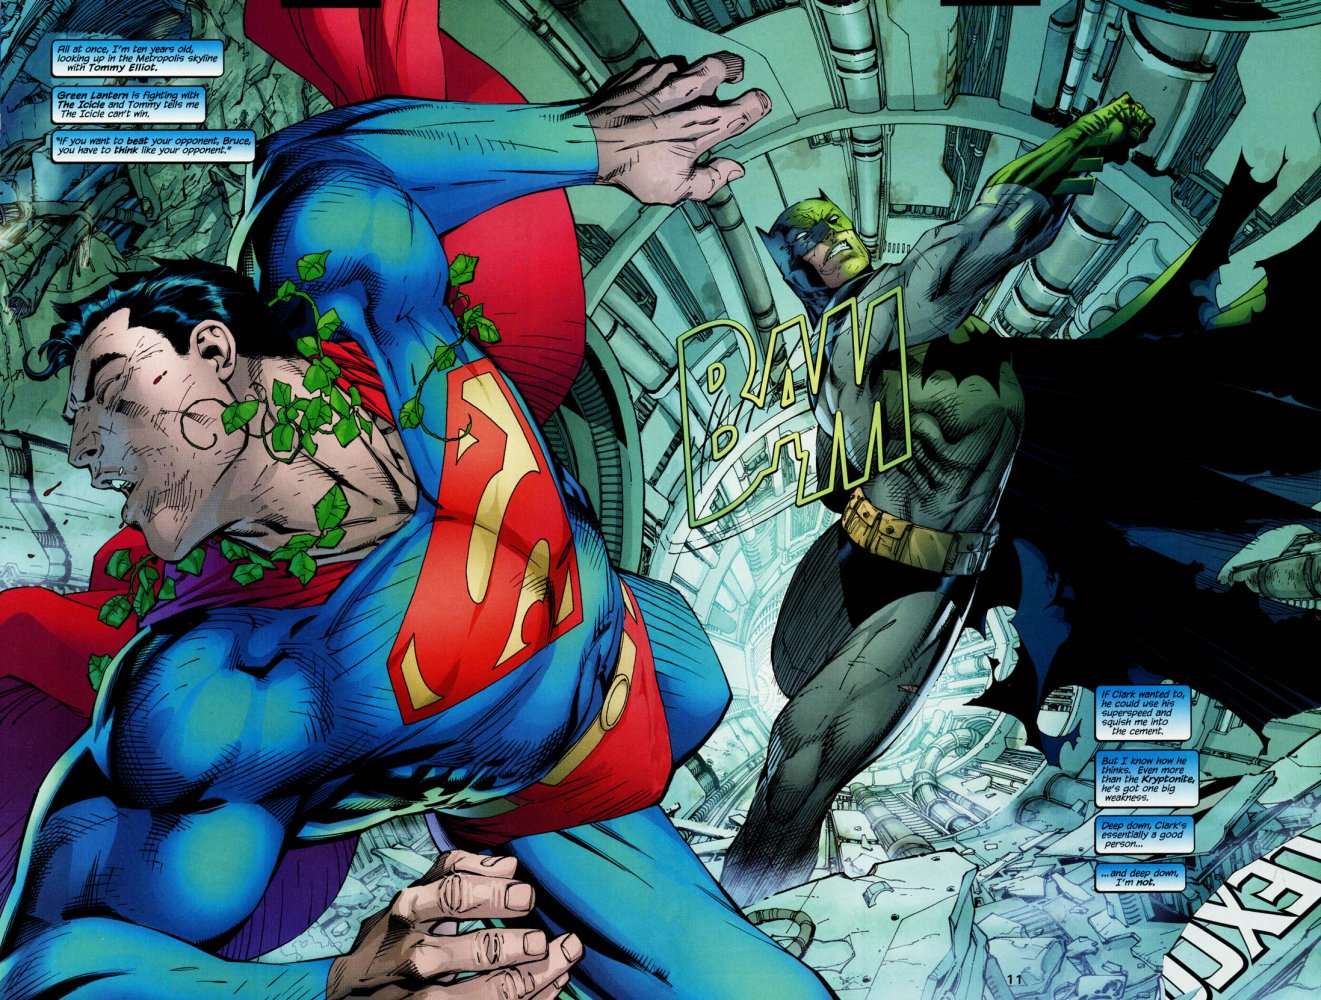 Batman punching Superman with Kryptonite Ring